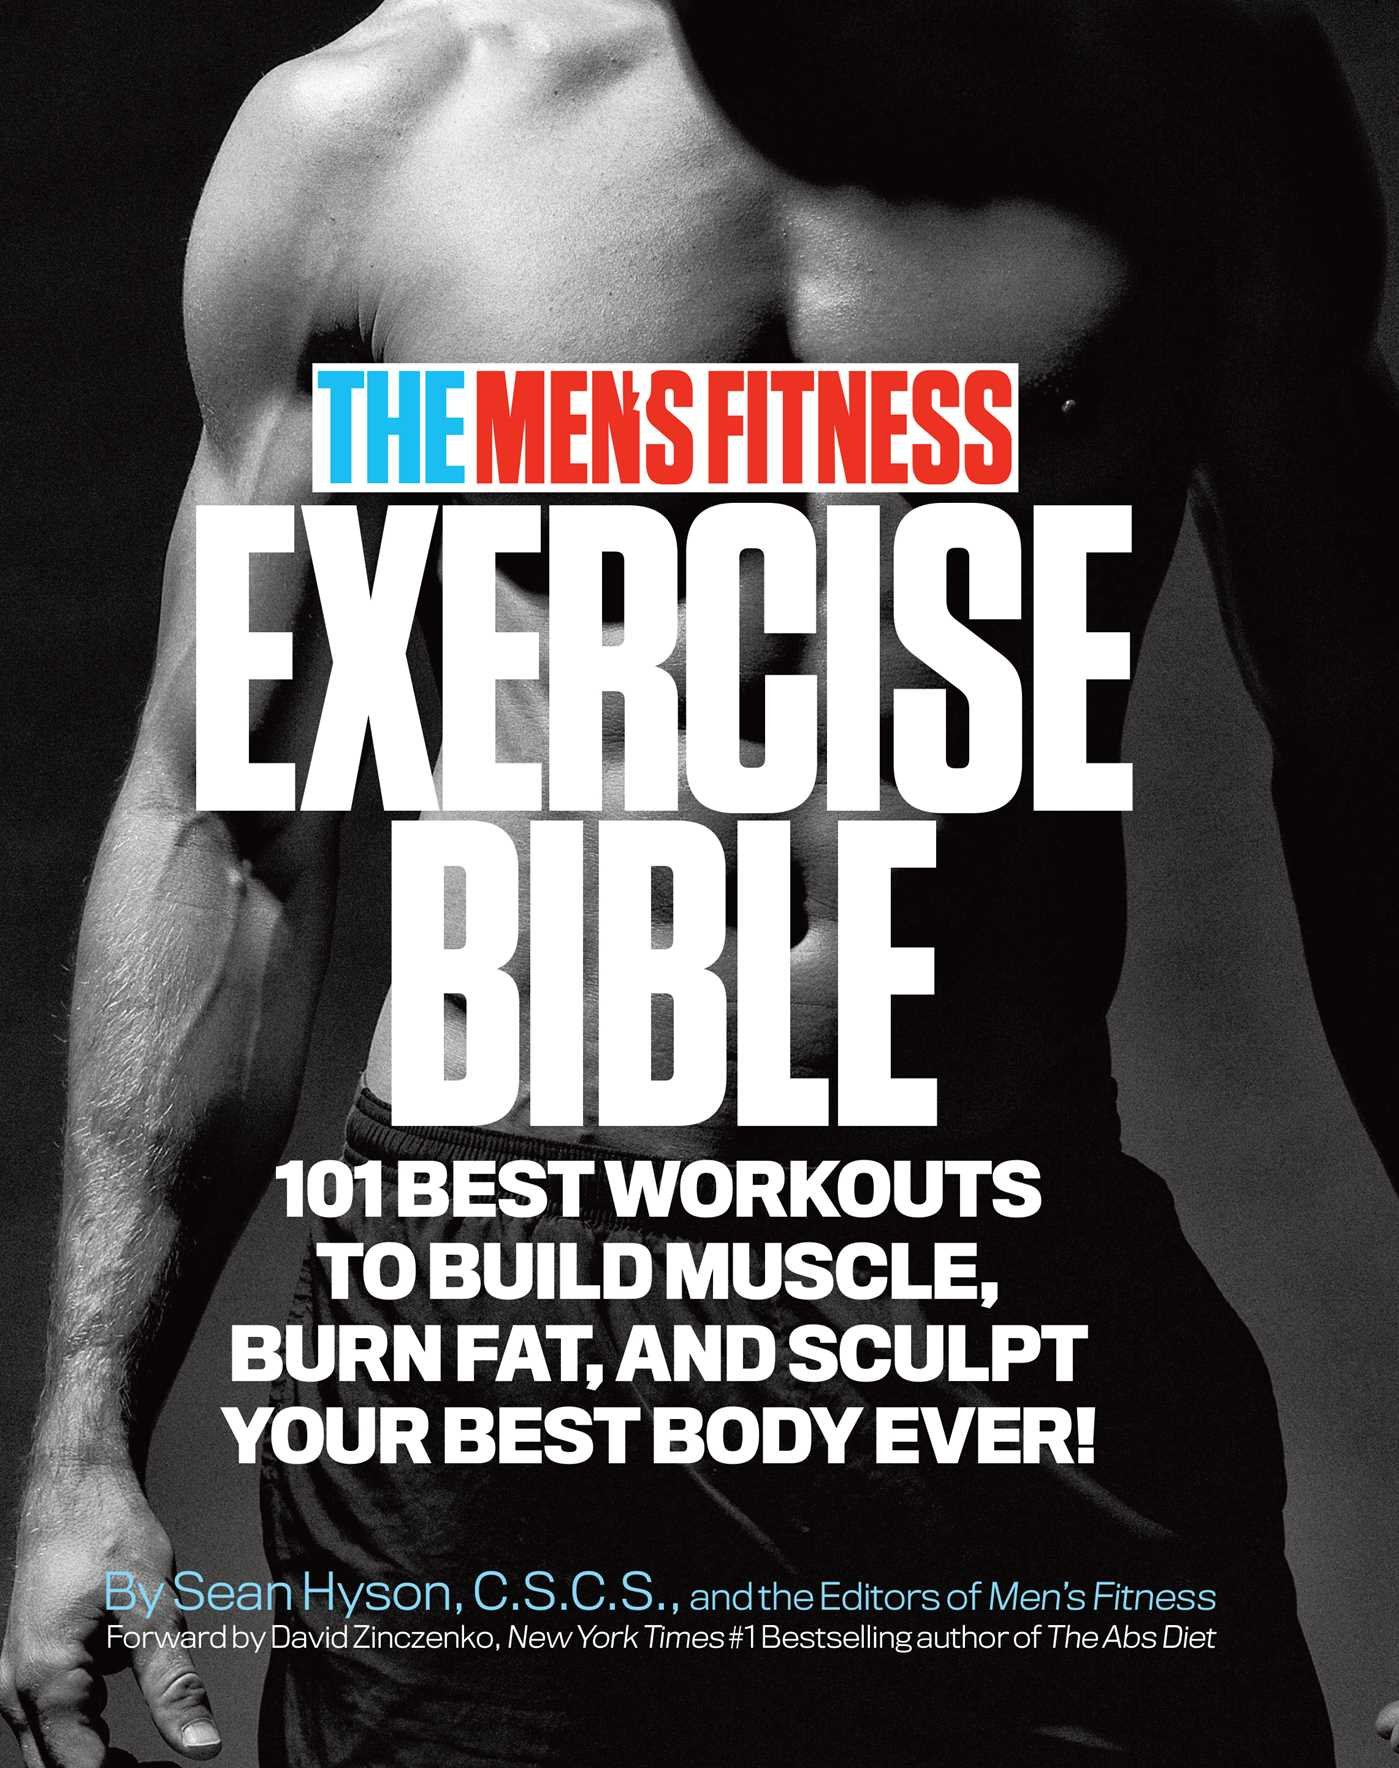 The Men's Fitness Exercise Bible: 101 Best Workouts To Build Muscle, Burn Fat and Sculpt Your Best Body Ever! by Galvanized Media